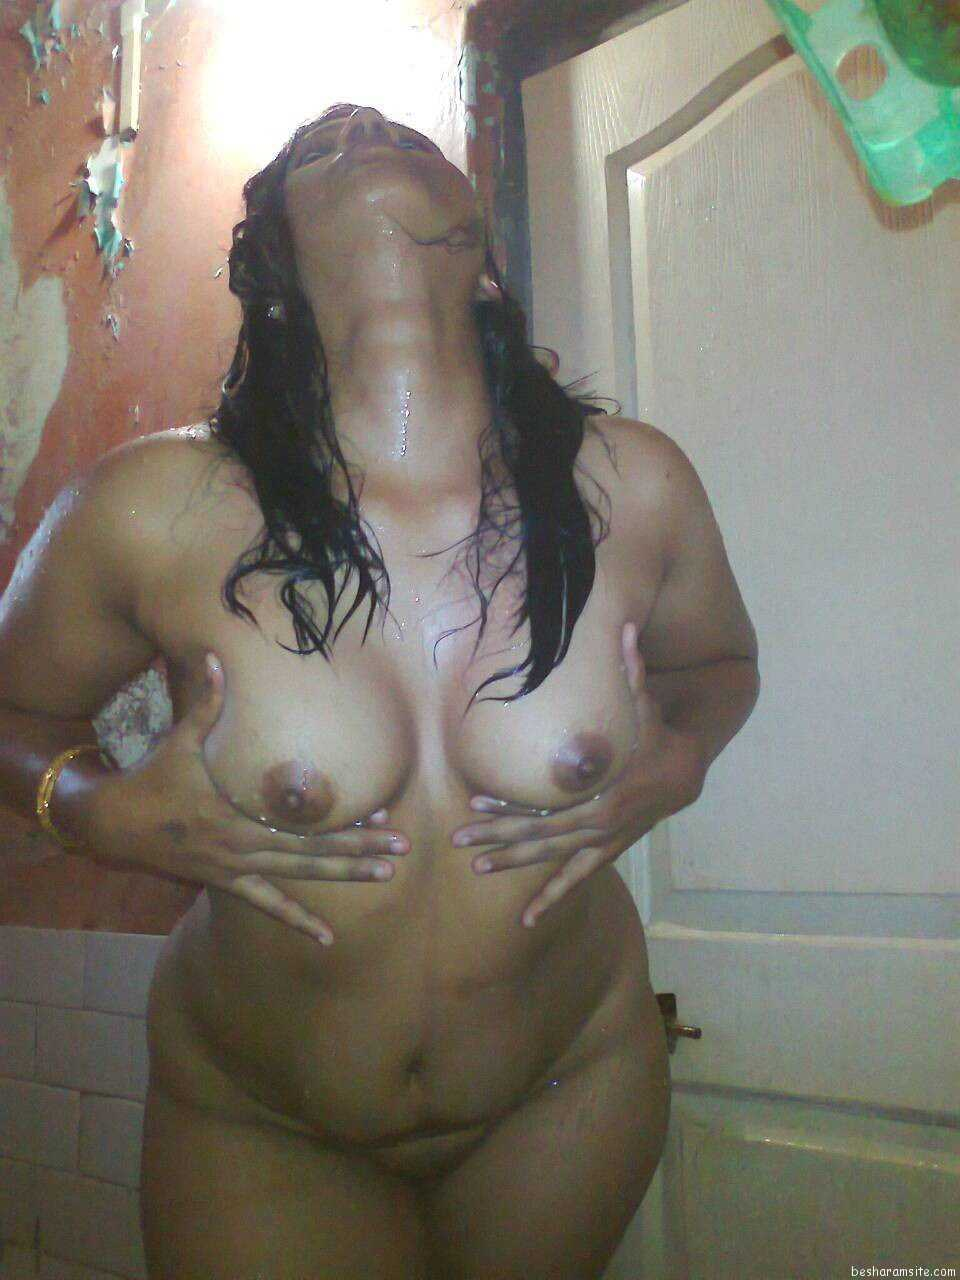 Indian Desi Aunty And Bhabhi Nude Photo Indian Bhabi -4748